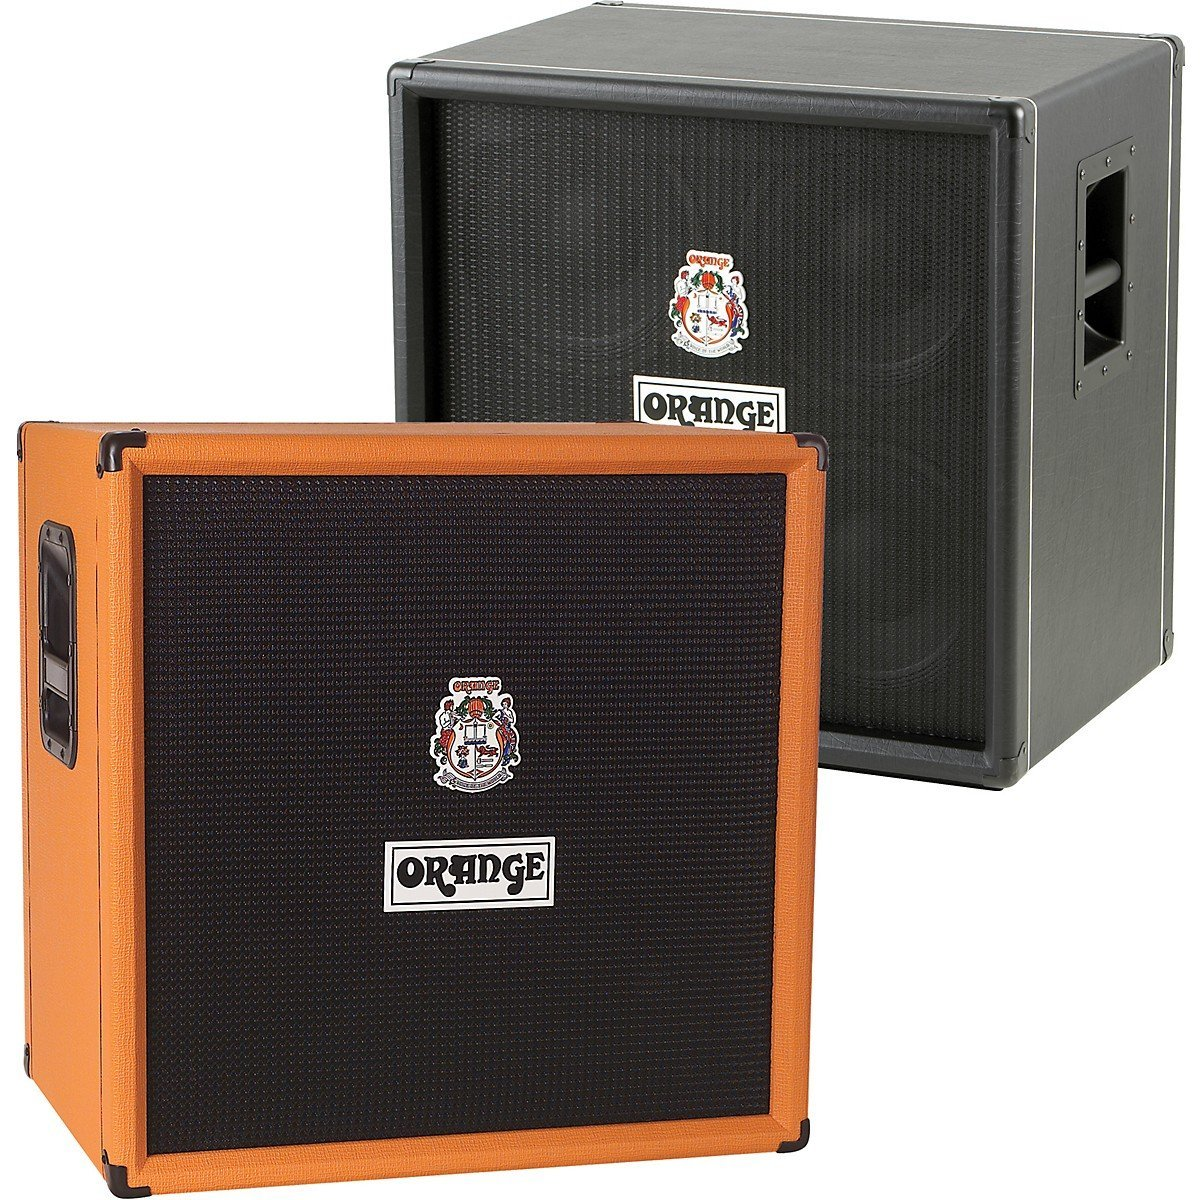 Best Small Bass Head Amp Roundup Under 900 Guitar Chalk Active Wiring Diagram Orange Obc410 Speaker Cabs